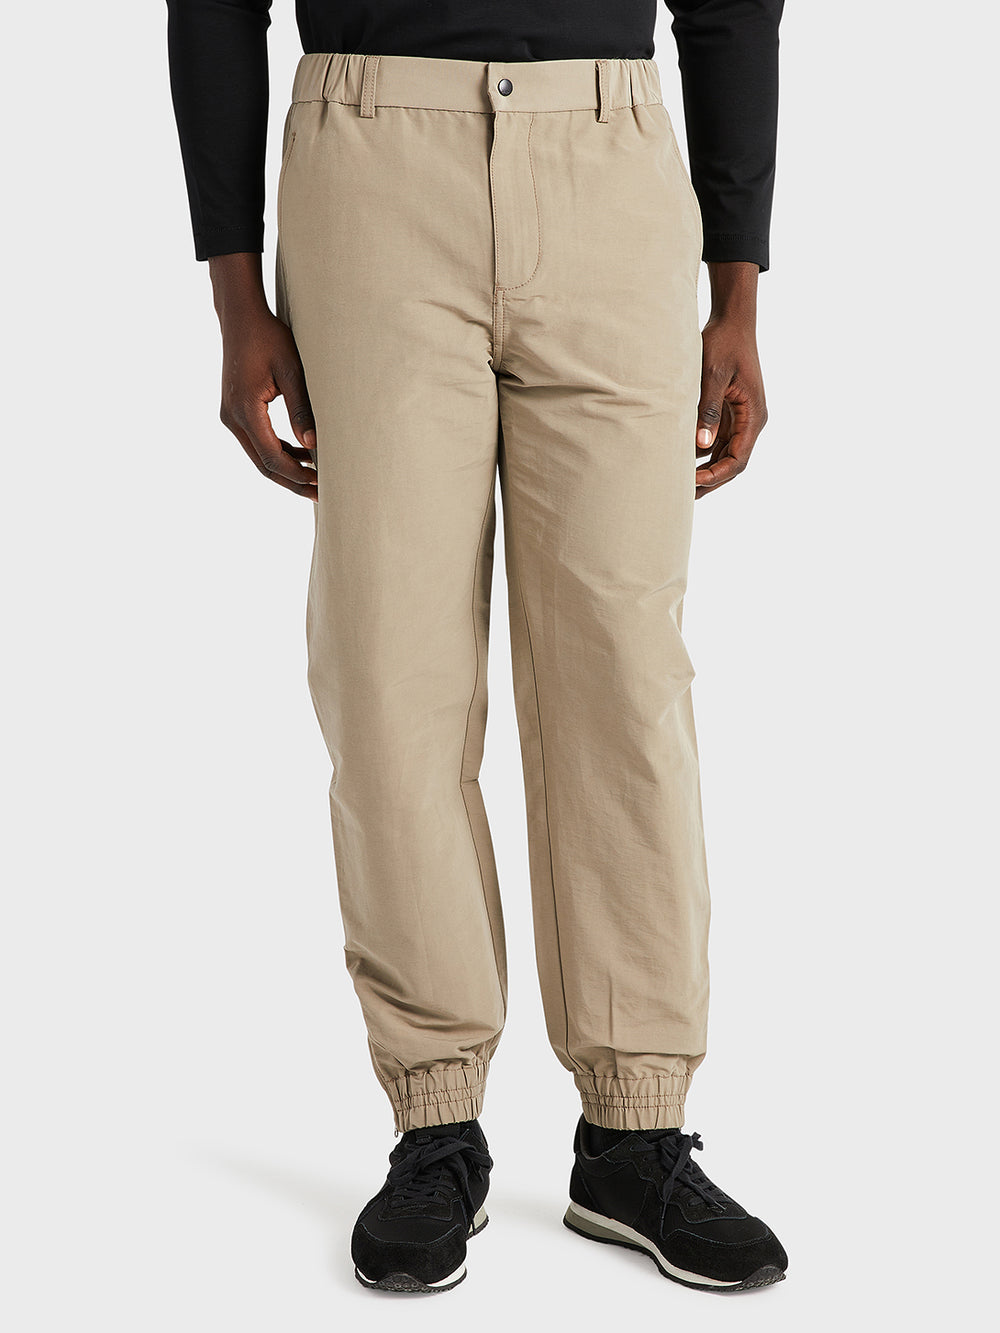 ONS Clothing Men's GARFIELD ACTIVE TROUSERS in KHAKI black friday deals